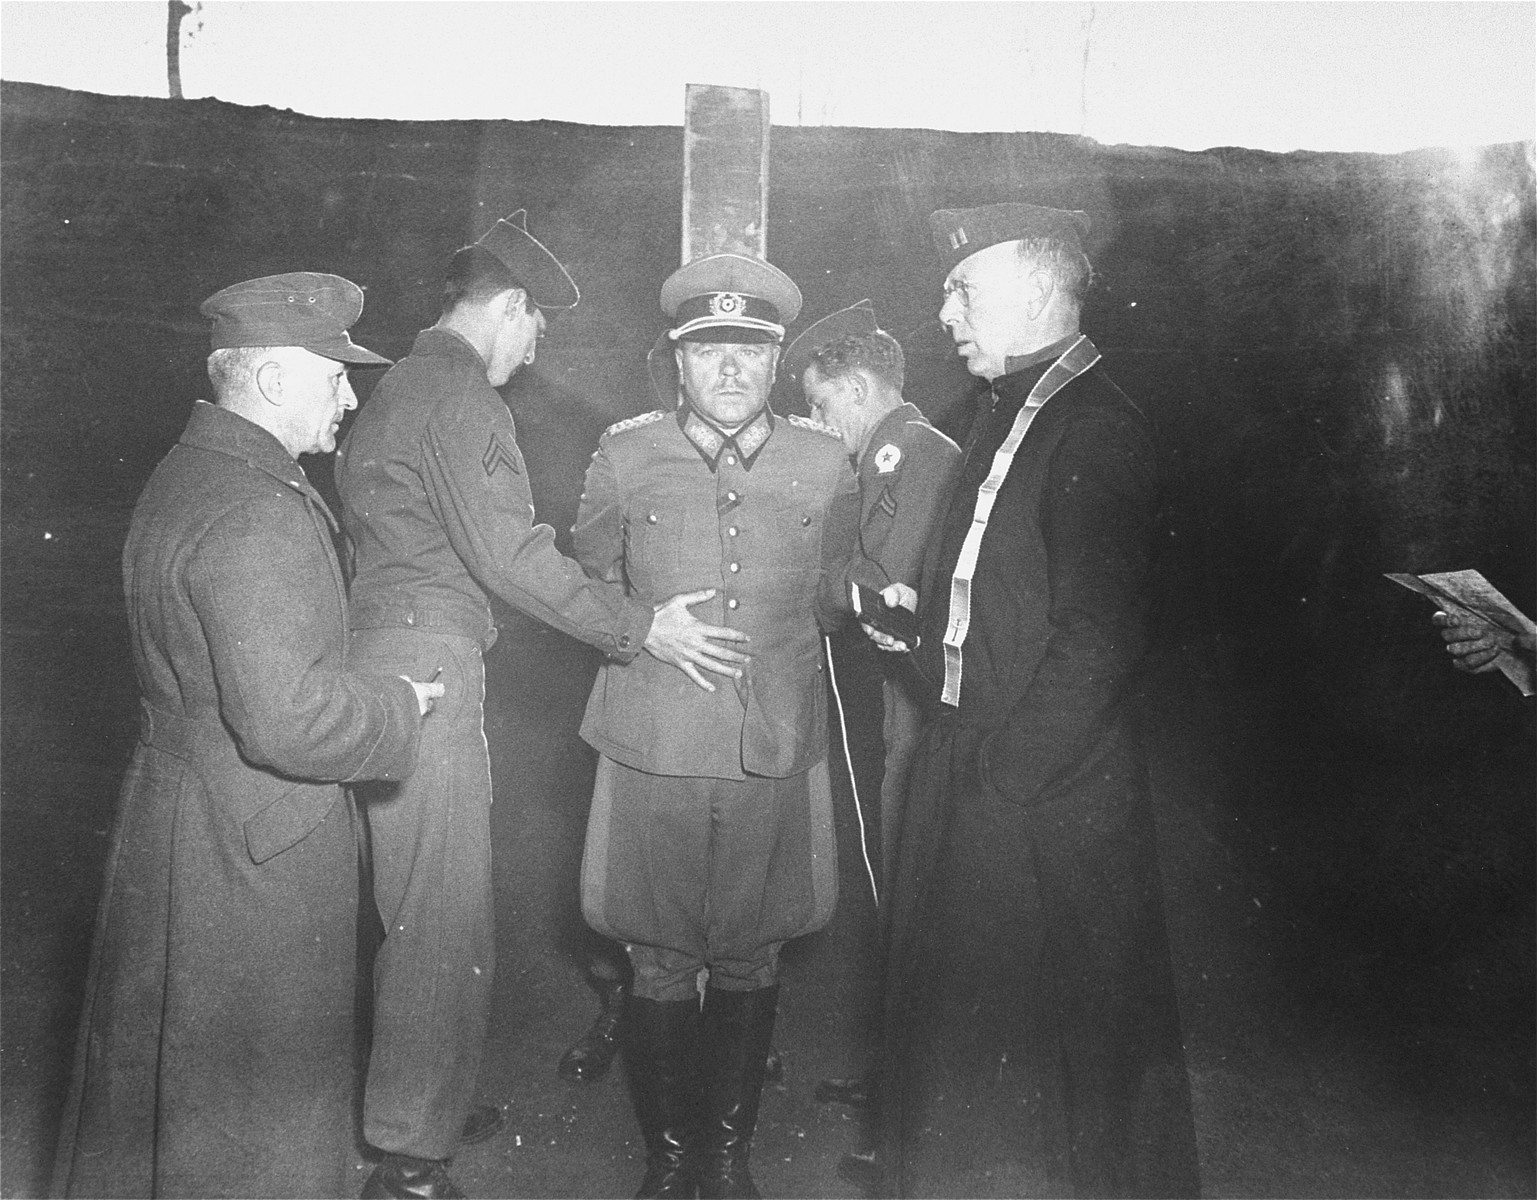 "American troops prepare Major General Anton Dostler for execution.  Dostler was executed for having ordered the shooting of 15 U.S. soldiers captured behind German lines in March 1944.  The Americans were on a sabotage mission and according to the Hague Convention should have been treated as prisoners of war upon their capture.  Dostler, however, claimed in his defense that he was simply carrying out orders, the so-called ""Commando Order,"" he and other German officers had received directly from Adolf Hitler to execute Allied troops captured in German-occupied territory if they were on intelligence or sabotage missions.  The court martial's denial of Dostler's defense set an important precedent for the trial of Nazi war criminals several months later at Nuremberg because it did not allow the accused to claim in their defense that they were only following orders."